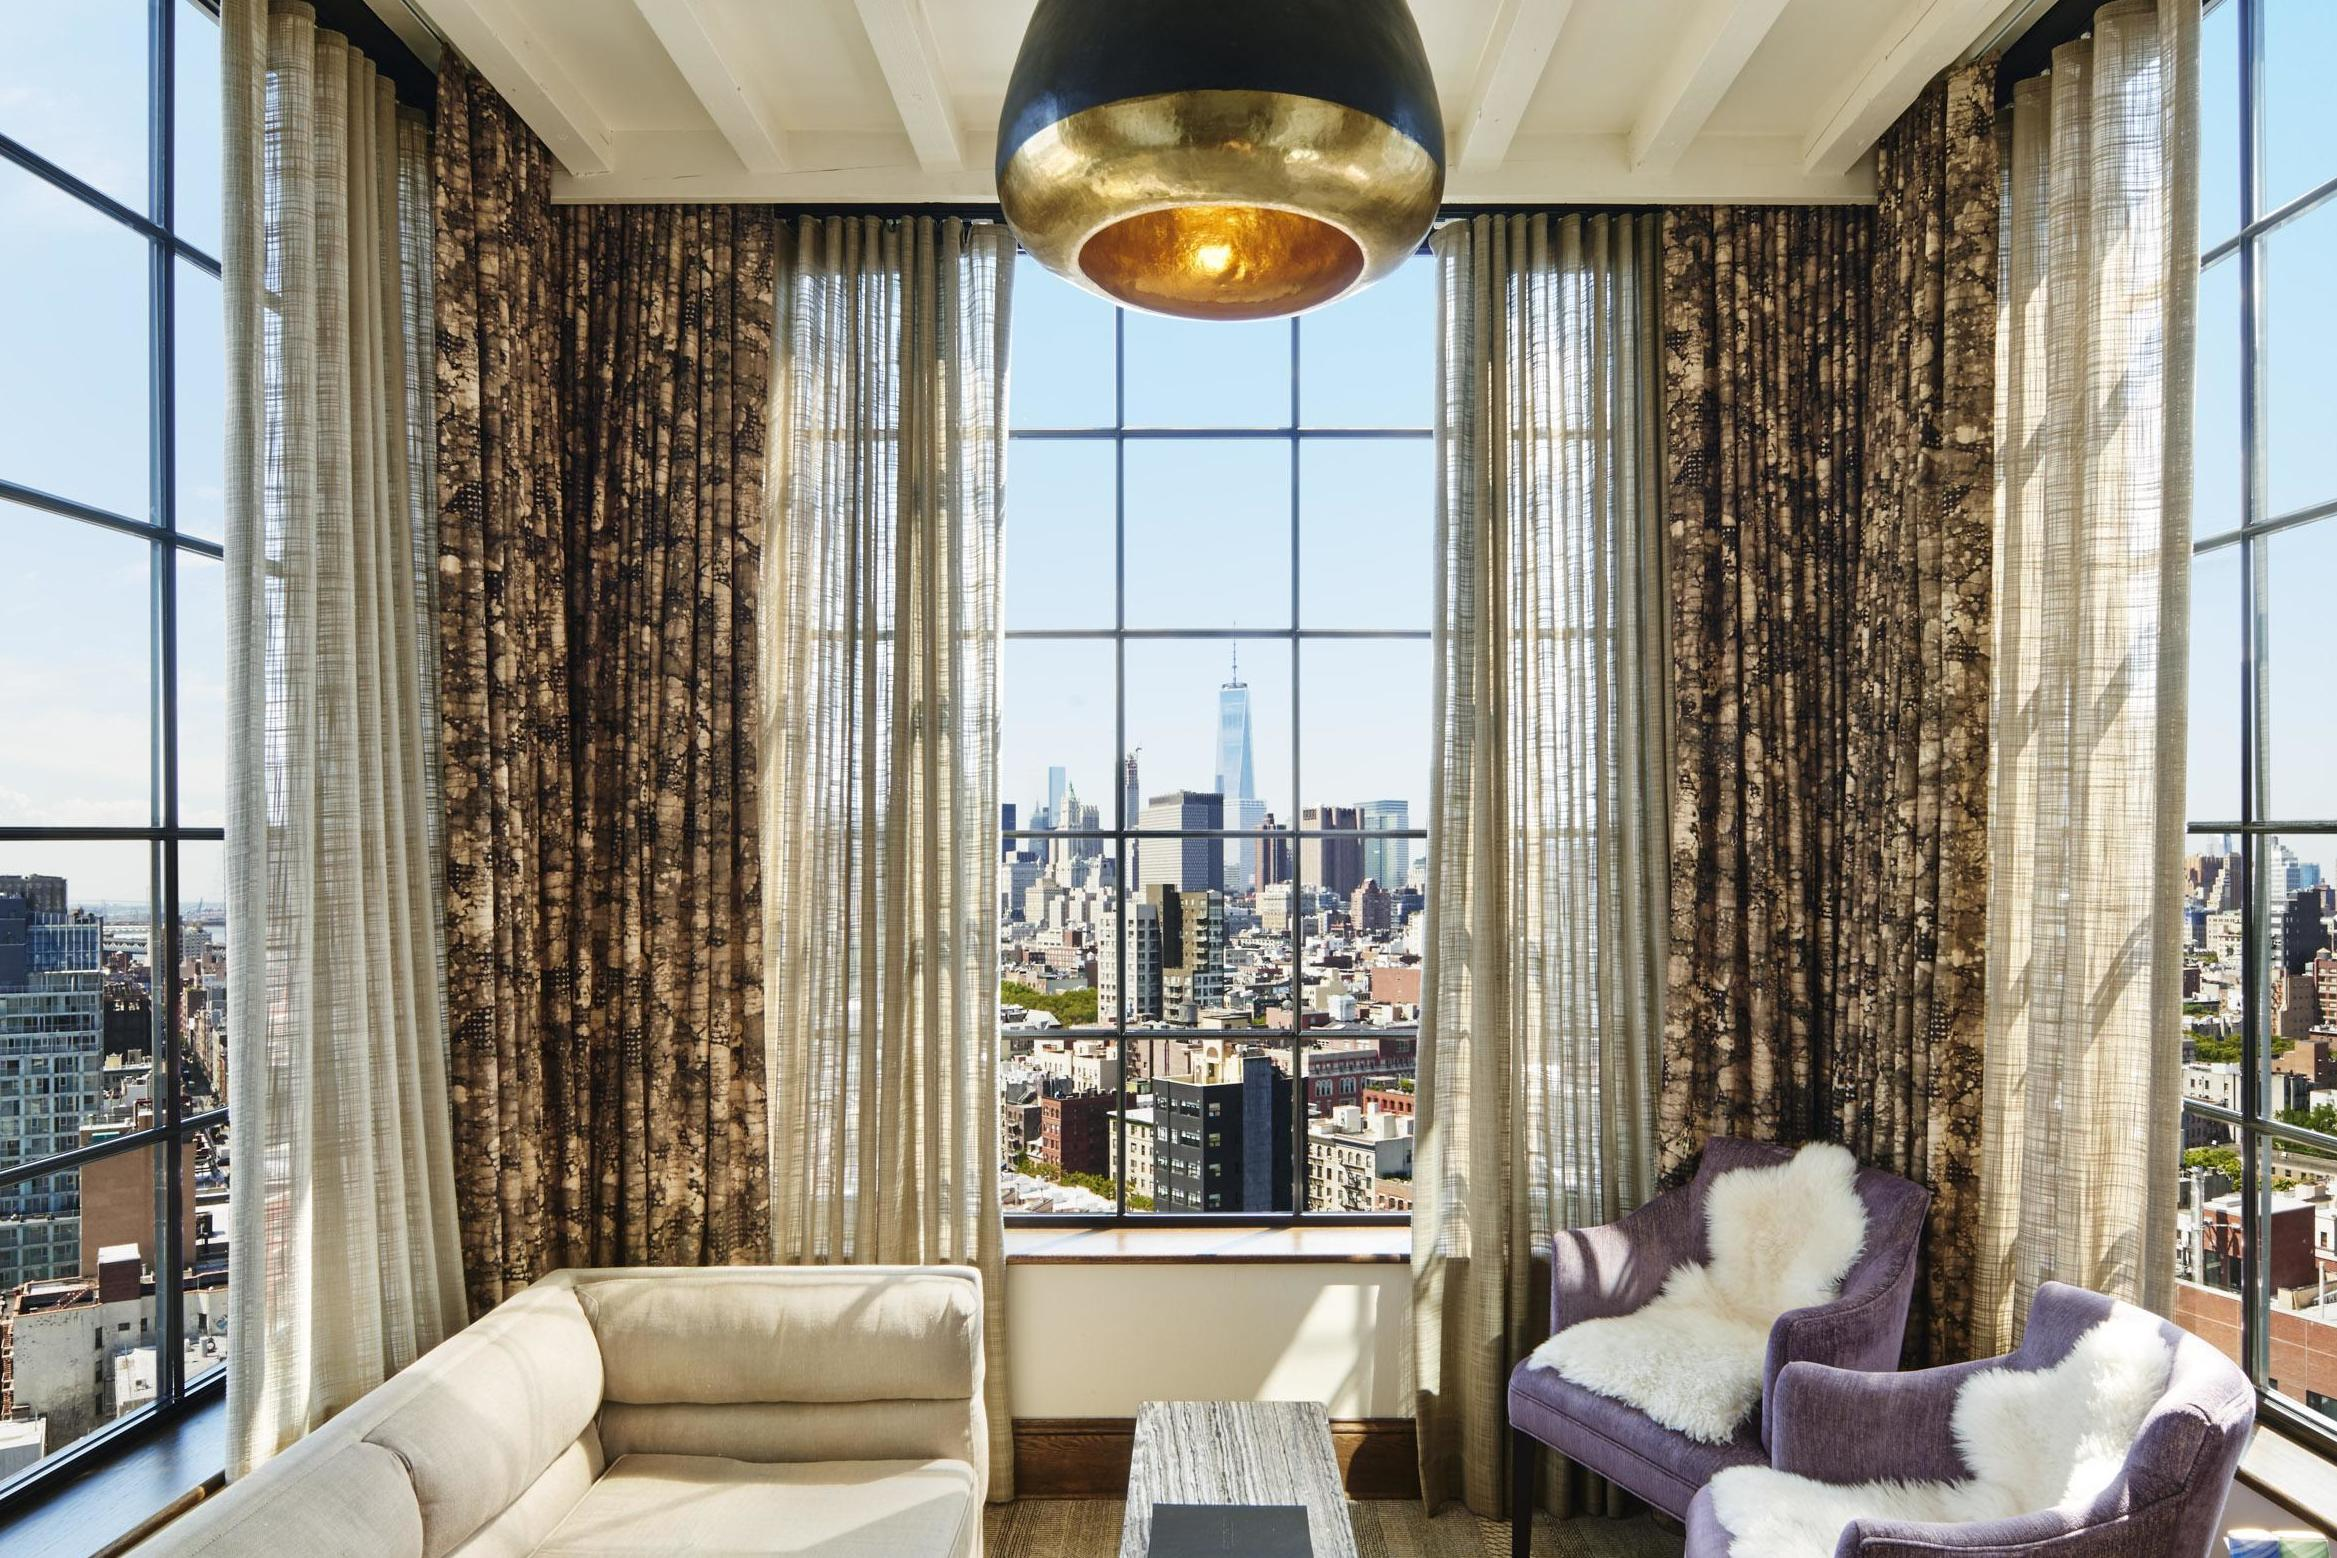 New York hotels: 10 best places to stay for location and